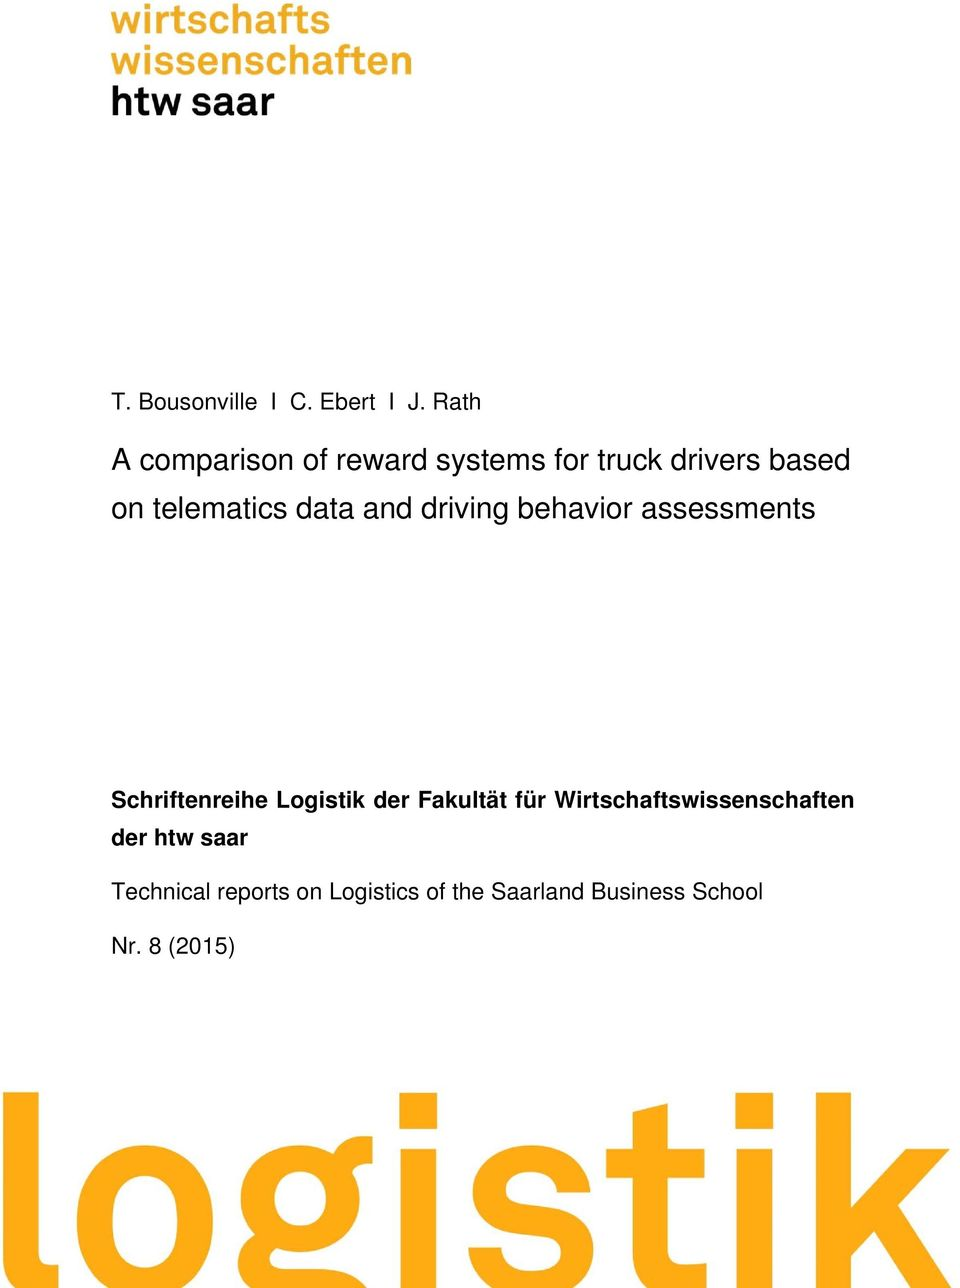 data and driving behavior assessments Schriftenreihe Logistik der Fakultät